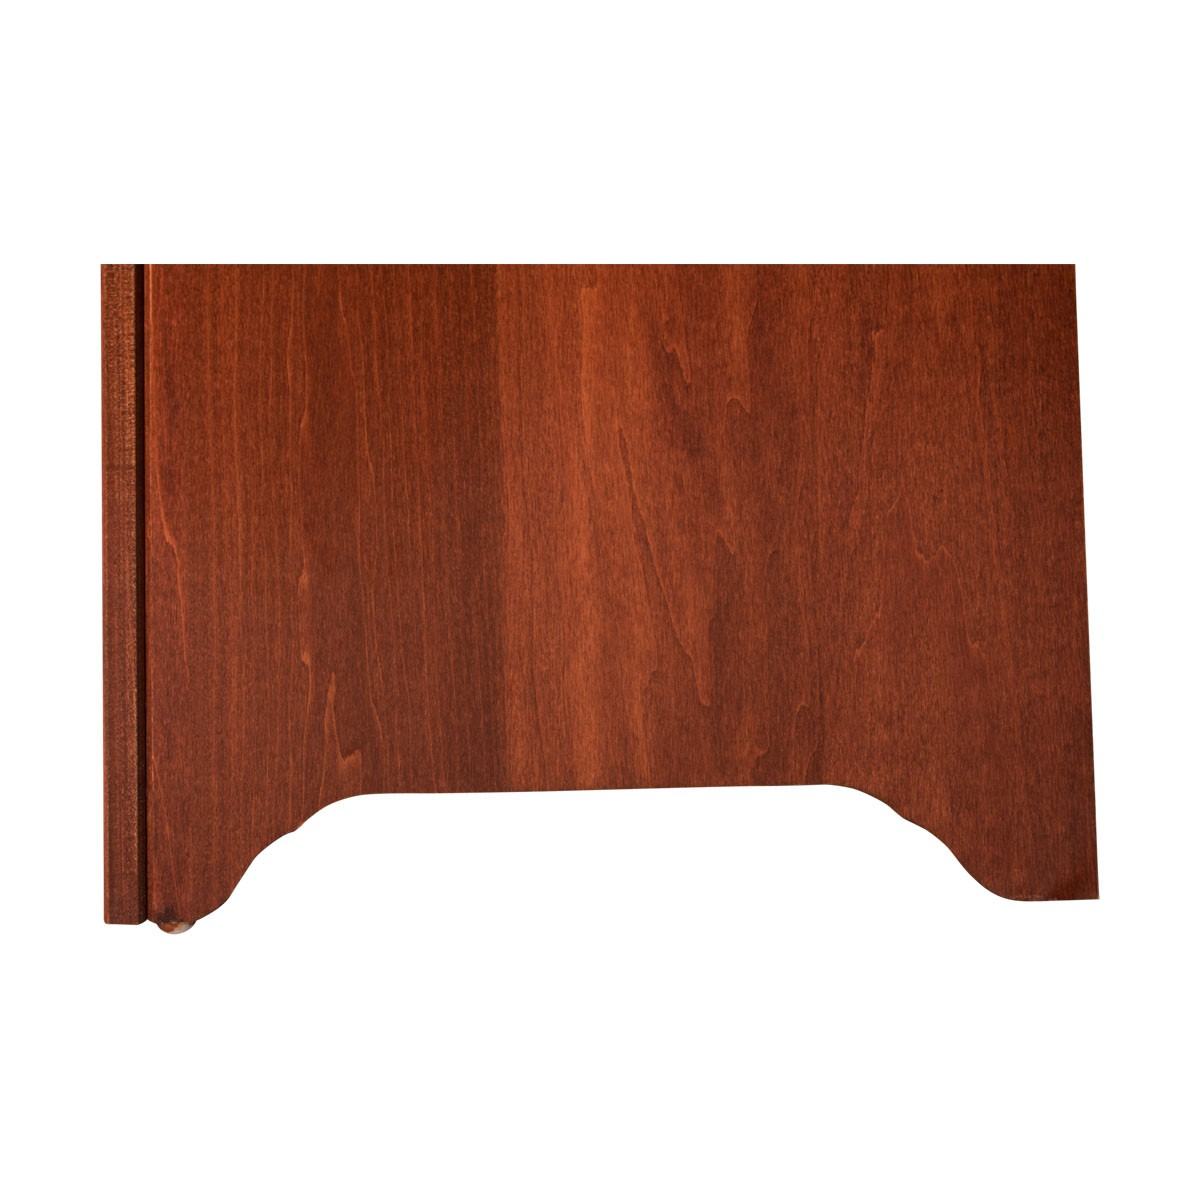 End Tables Bedroom Cherry Stain Birch Shaker End Table Living Room End Tables Bedroom End Tables End Table Living Room